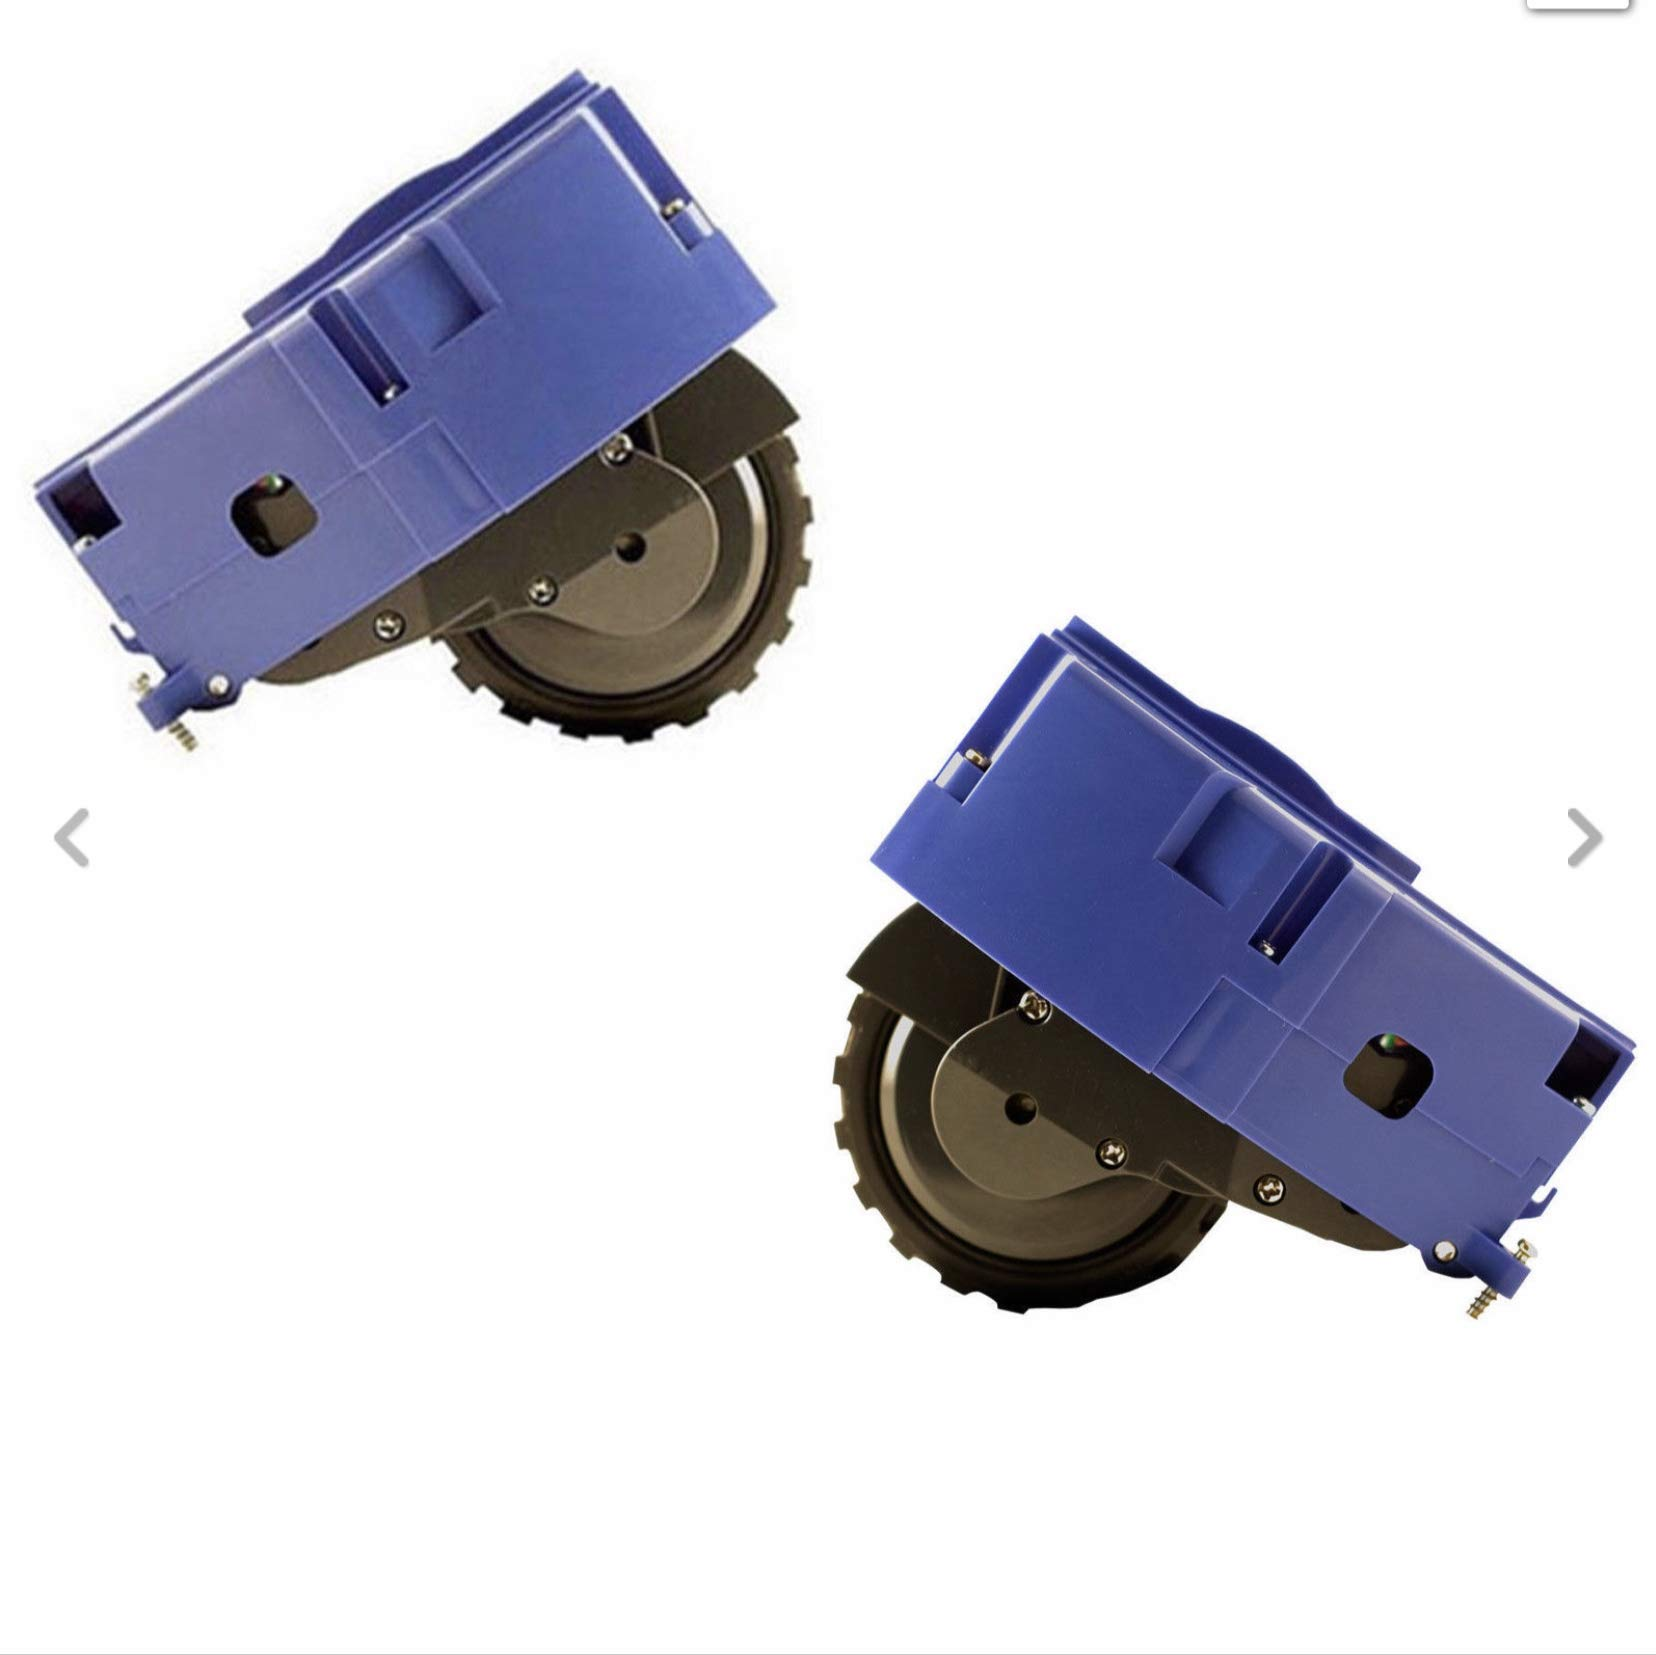 Roomba 500 / 600 / 700 / 800 / 900 Series Right and Left Drive Wheel module pair